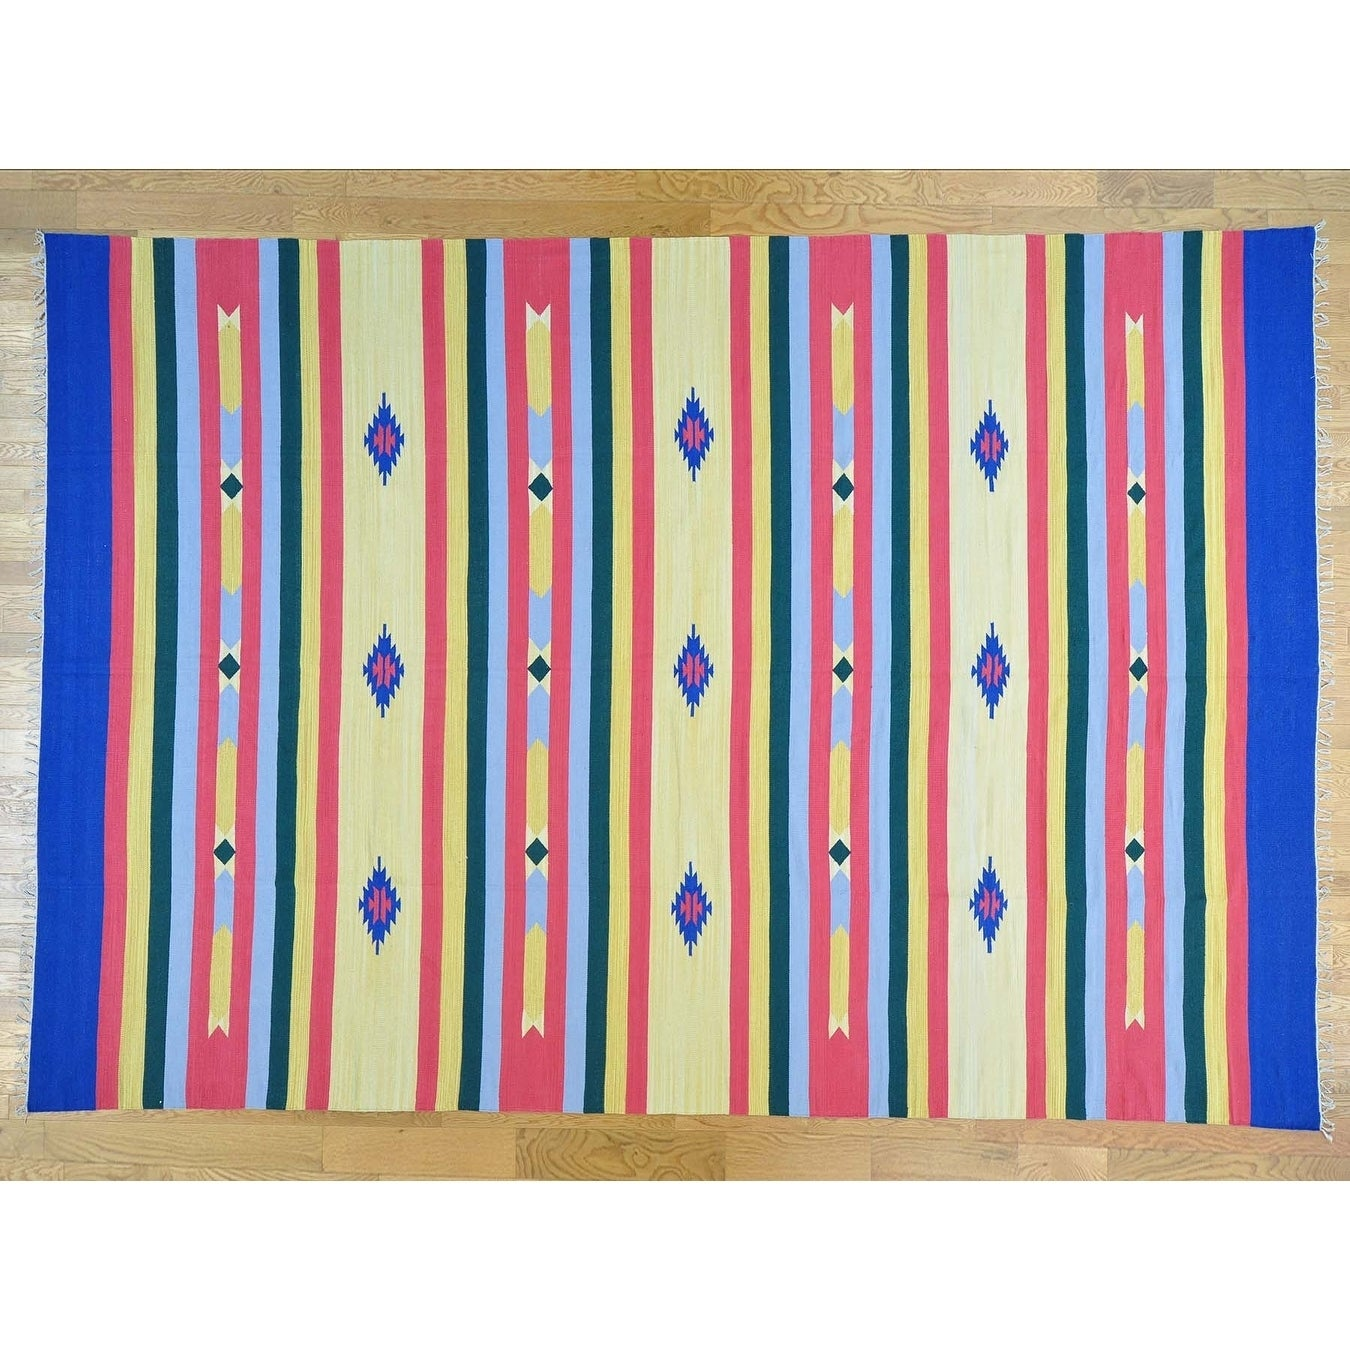 Hand Knotted Multicolored Flat Weave with Cotton Oriental Rug - 10 x 145